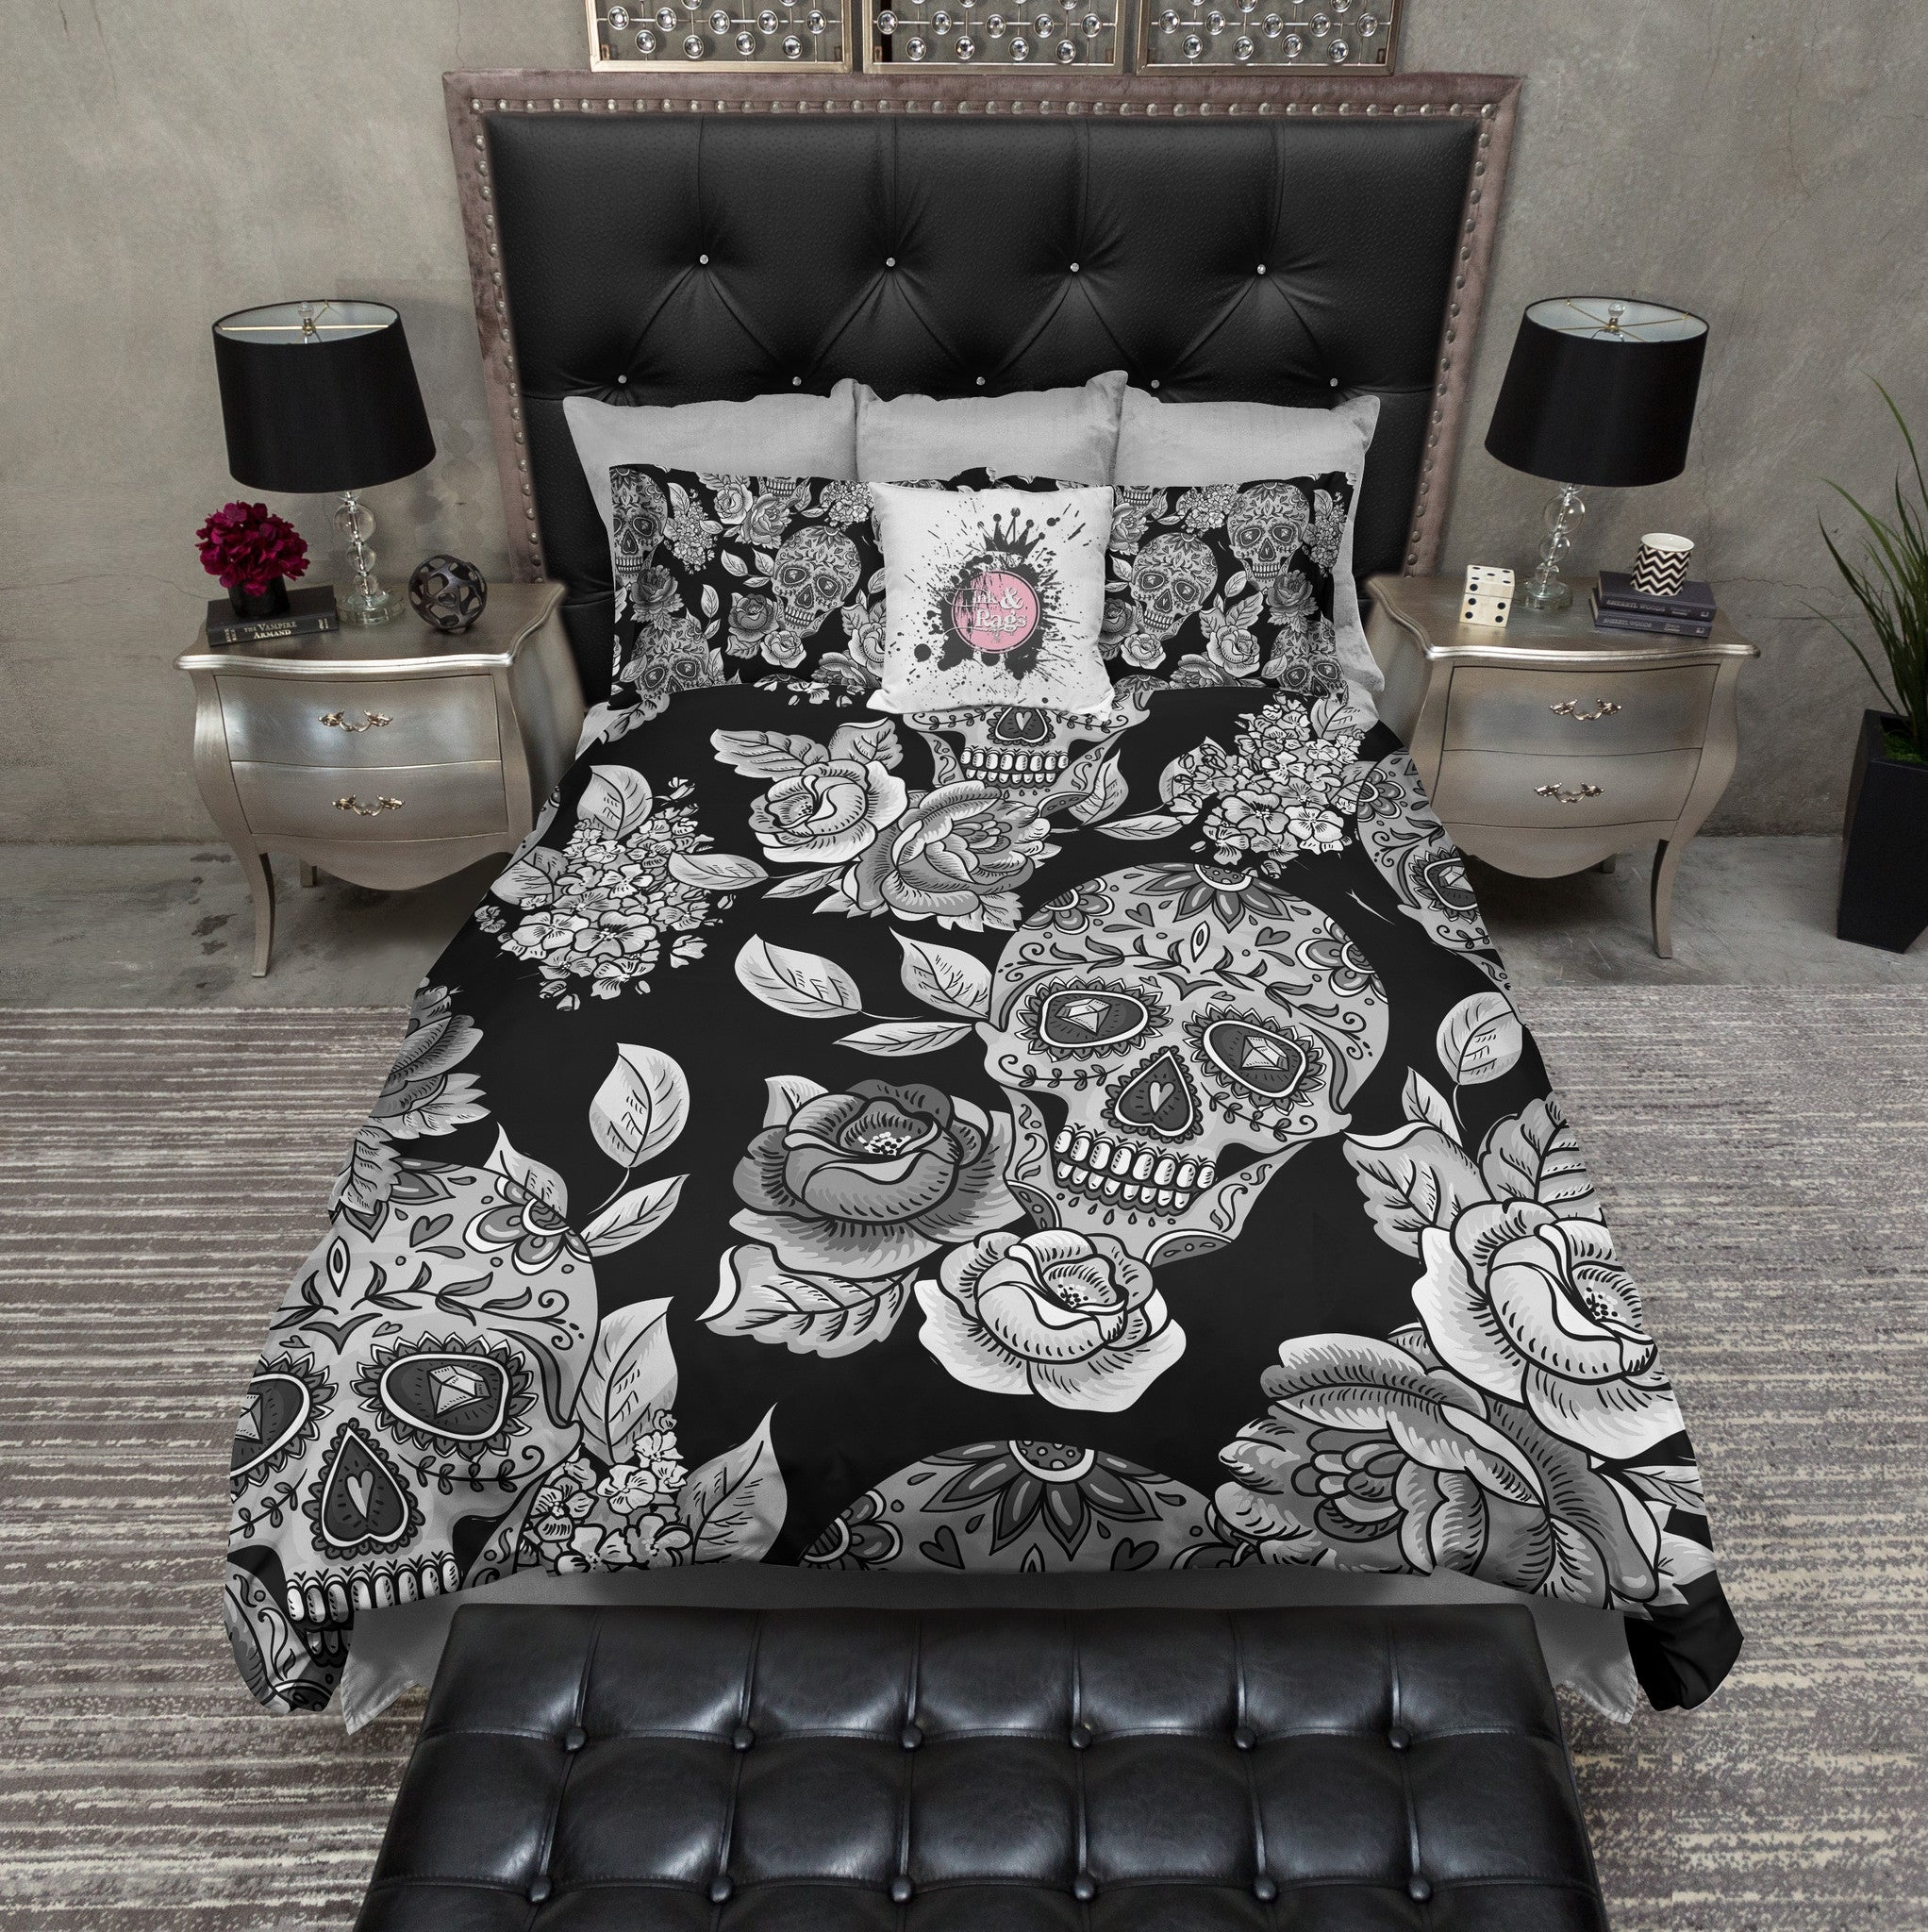 Signature Black Sugar Skull And Rose Bedding Ink And Rags